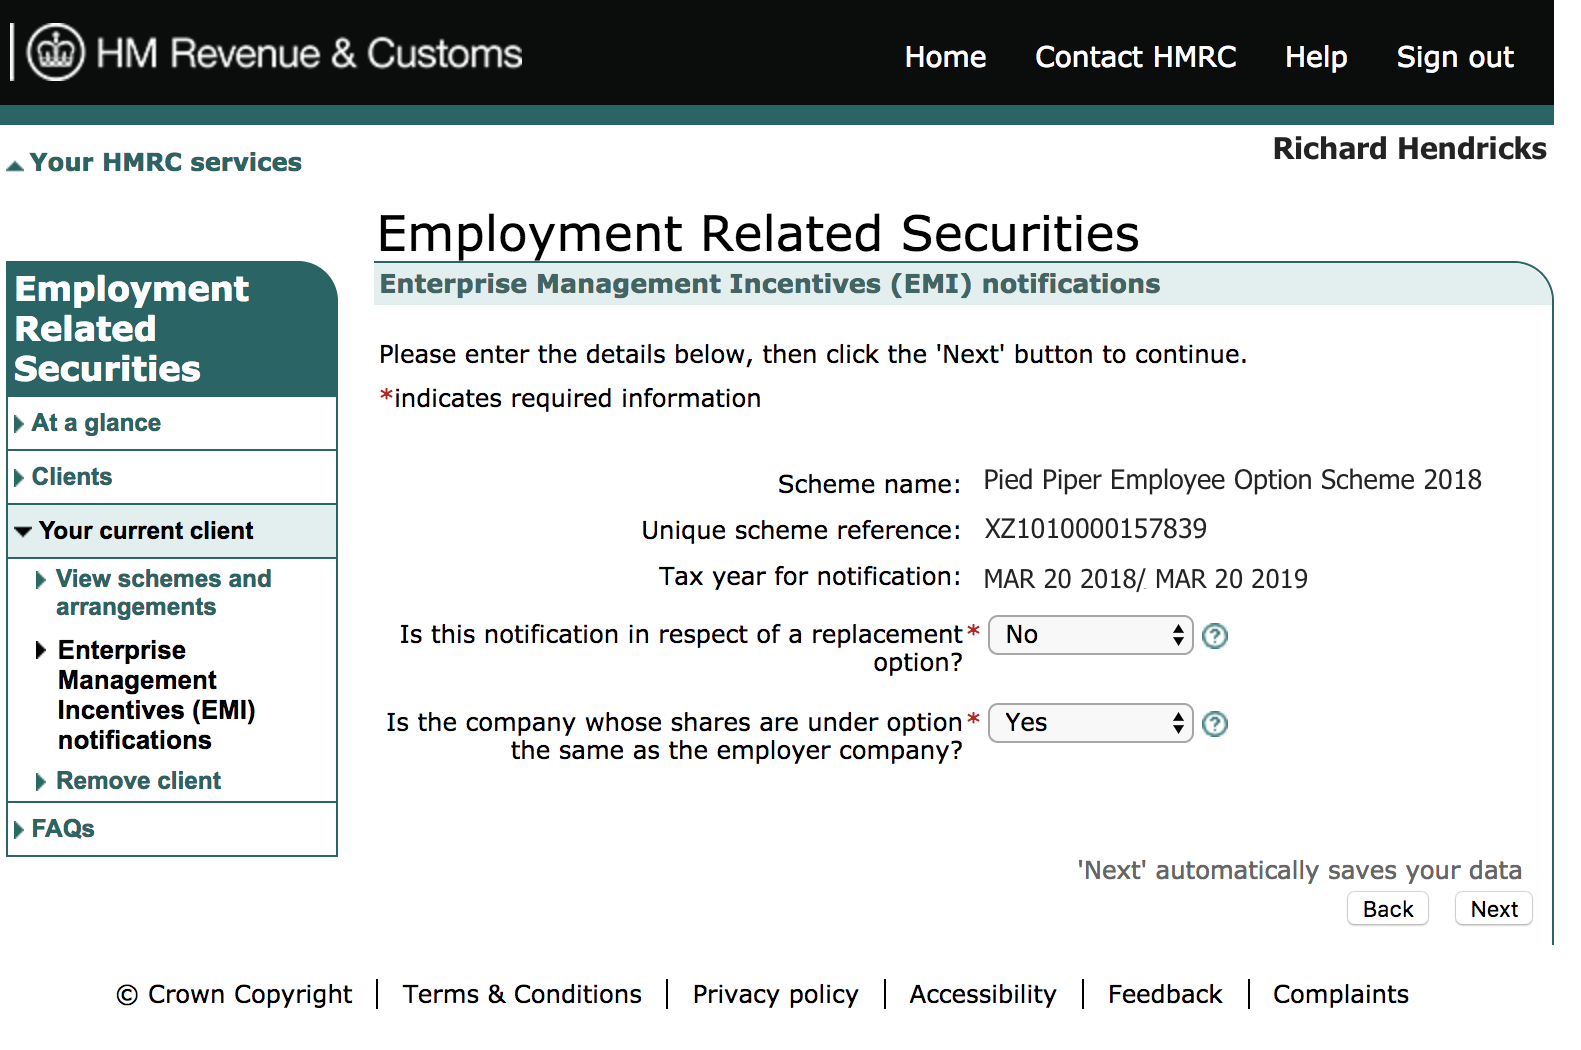 How to File An EMI Notification to the HMRC